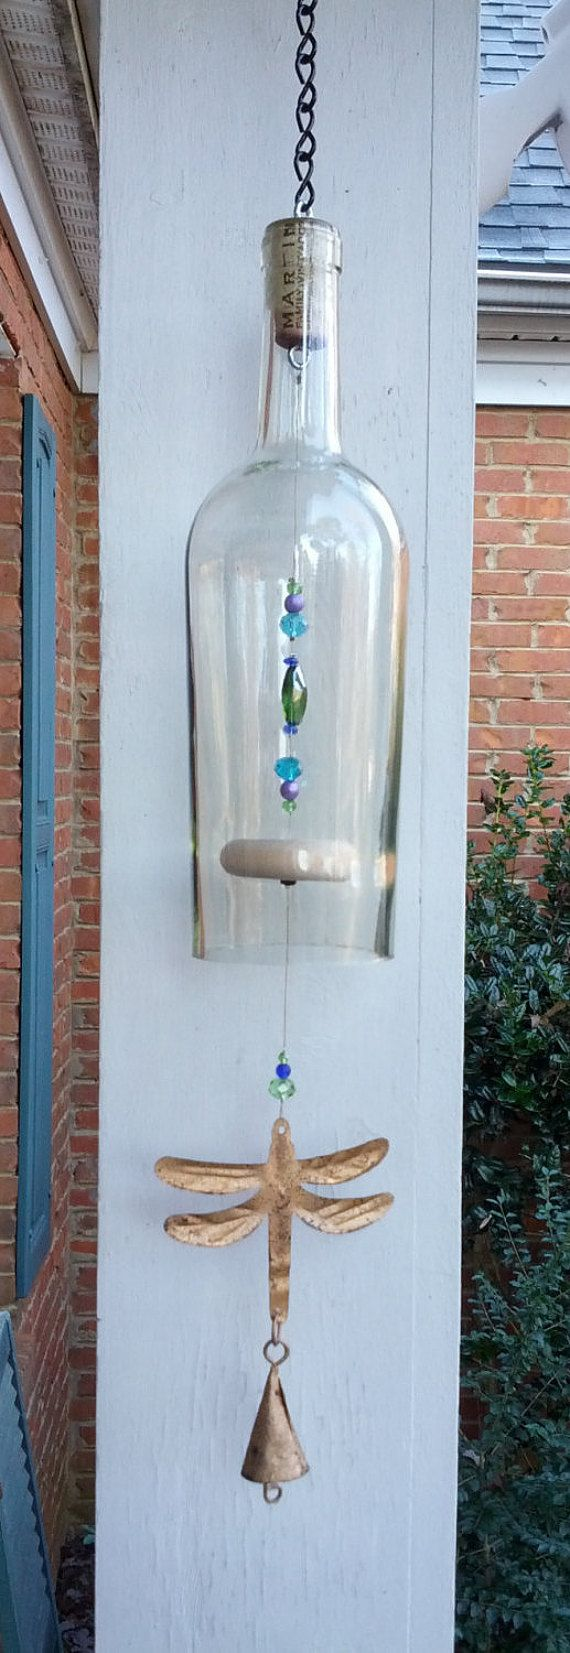 Wine Bottle Wind Chime With Dragon Fly by GreenGoddessGlass